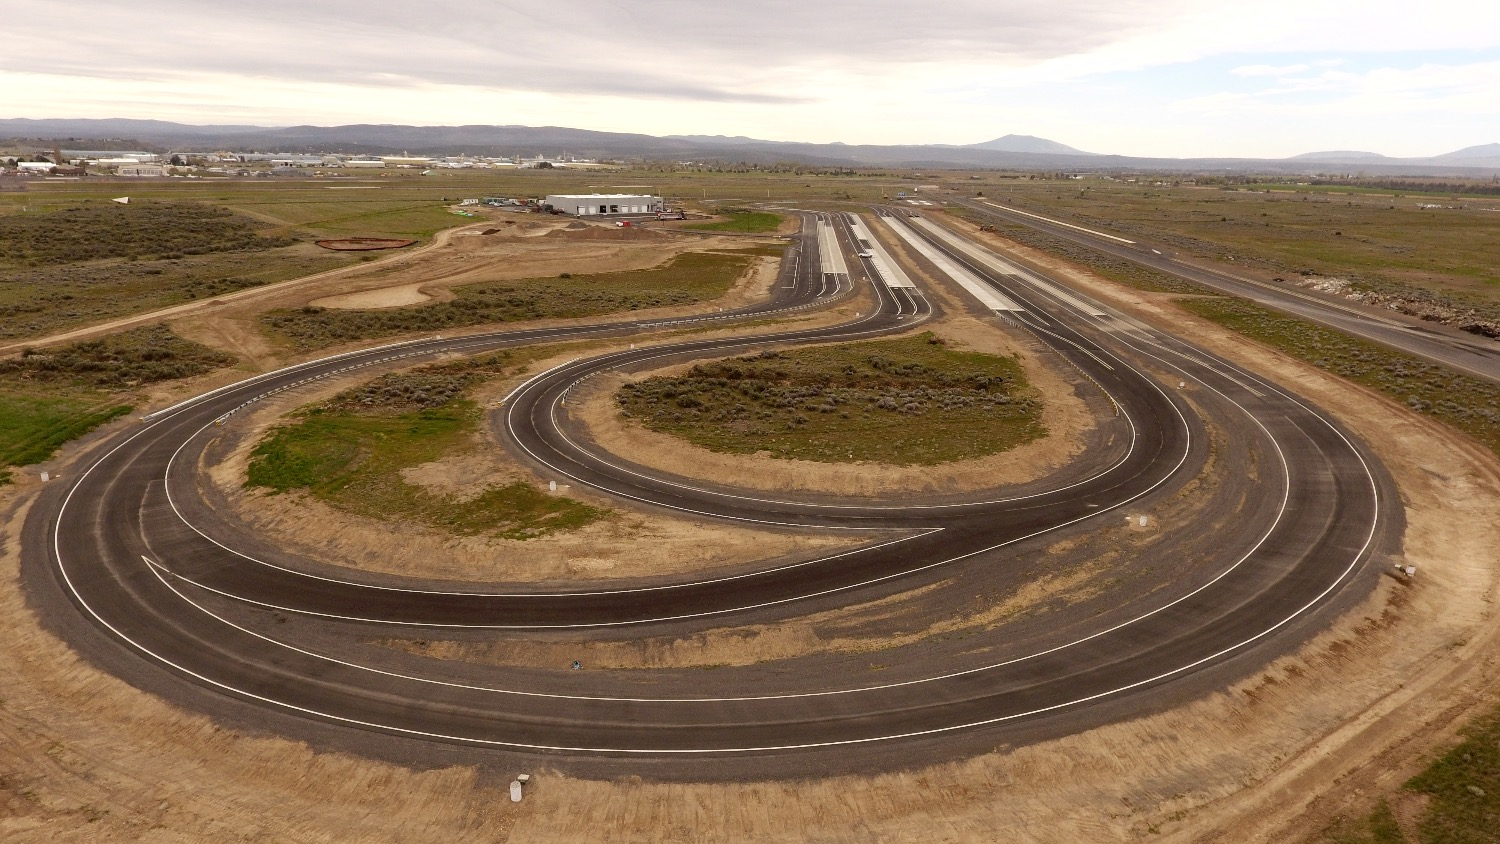 Daimler High Desert Proving Ground